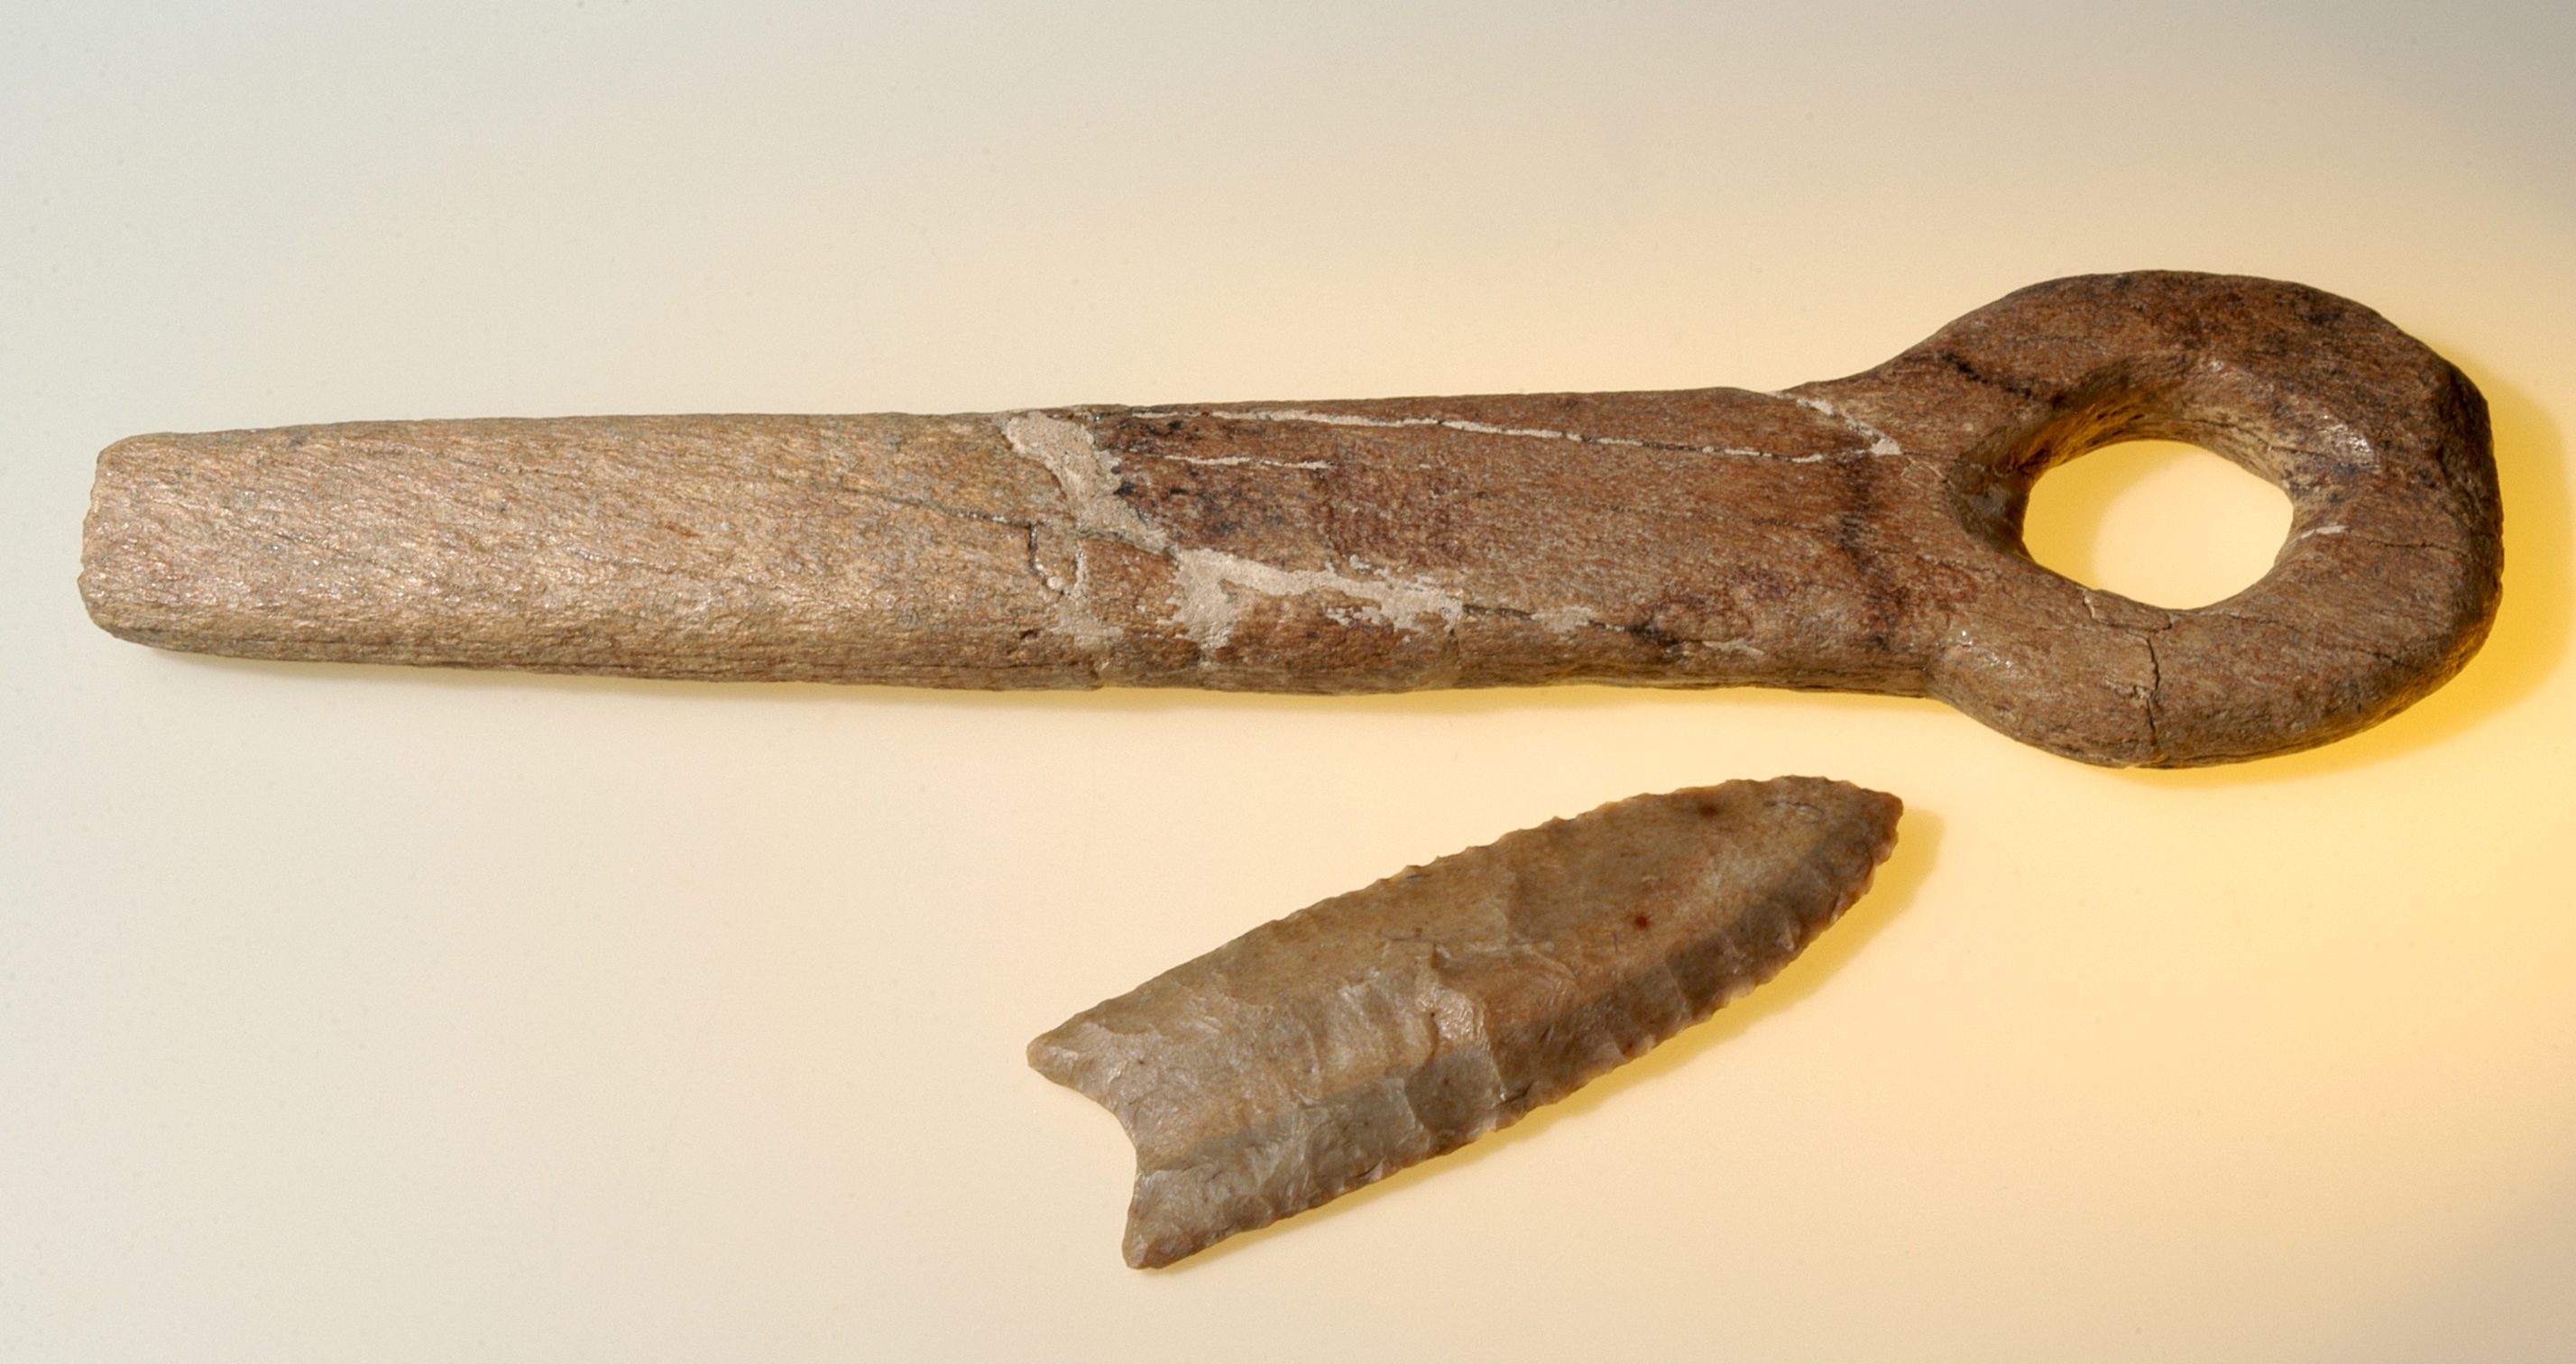 Clovis Bone Shaft Wrench, Cochise County, Arizona, about 13,000 years old